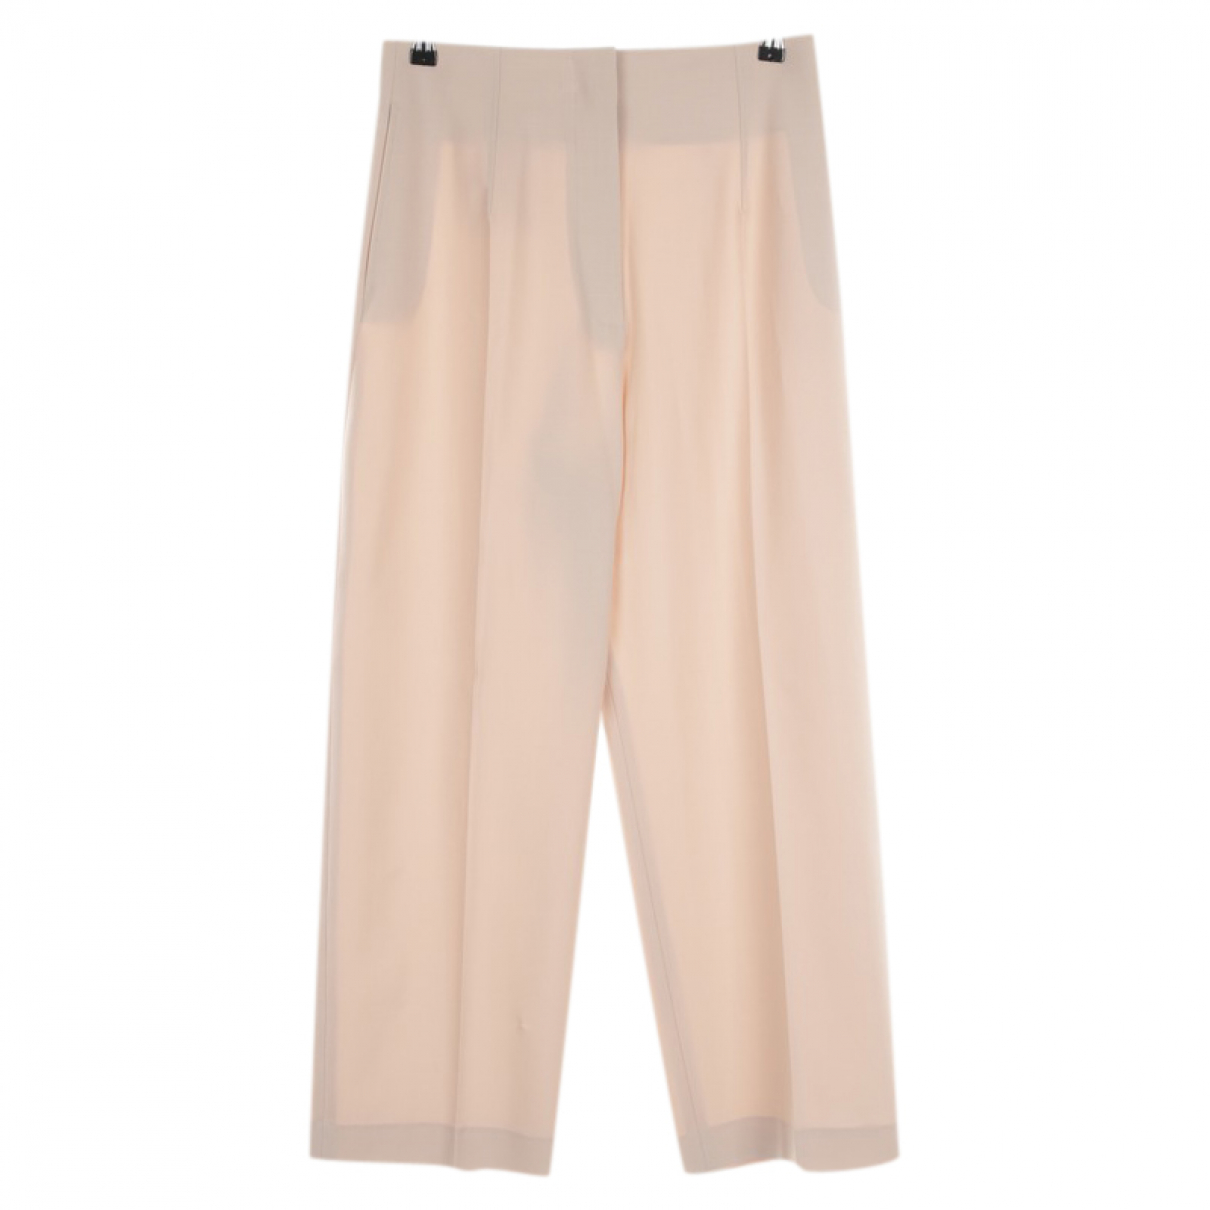 Jacquemus \N Beige Wool Trousers for Women 38 FR